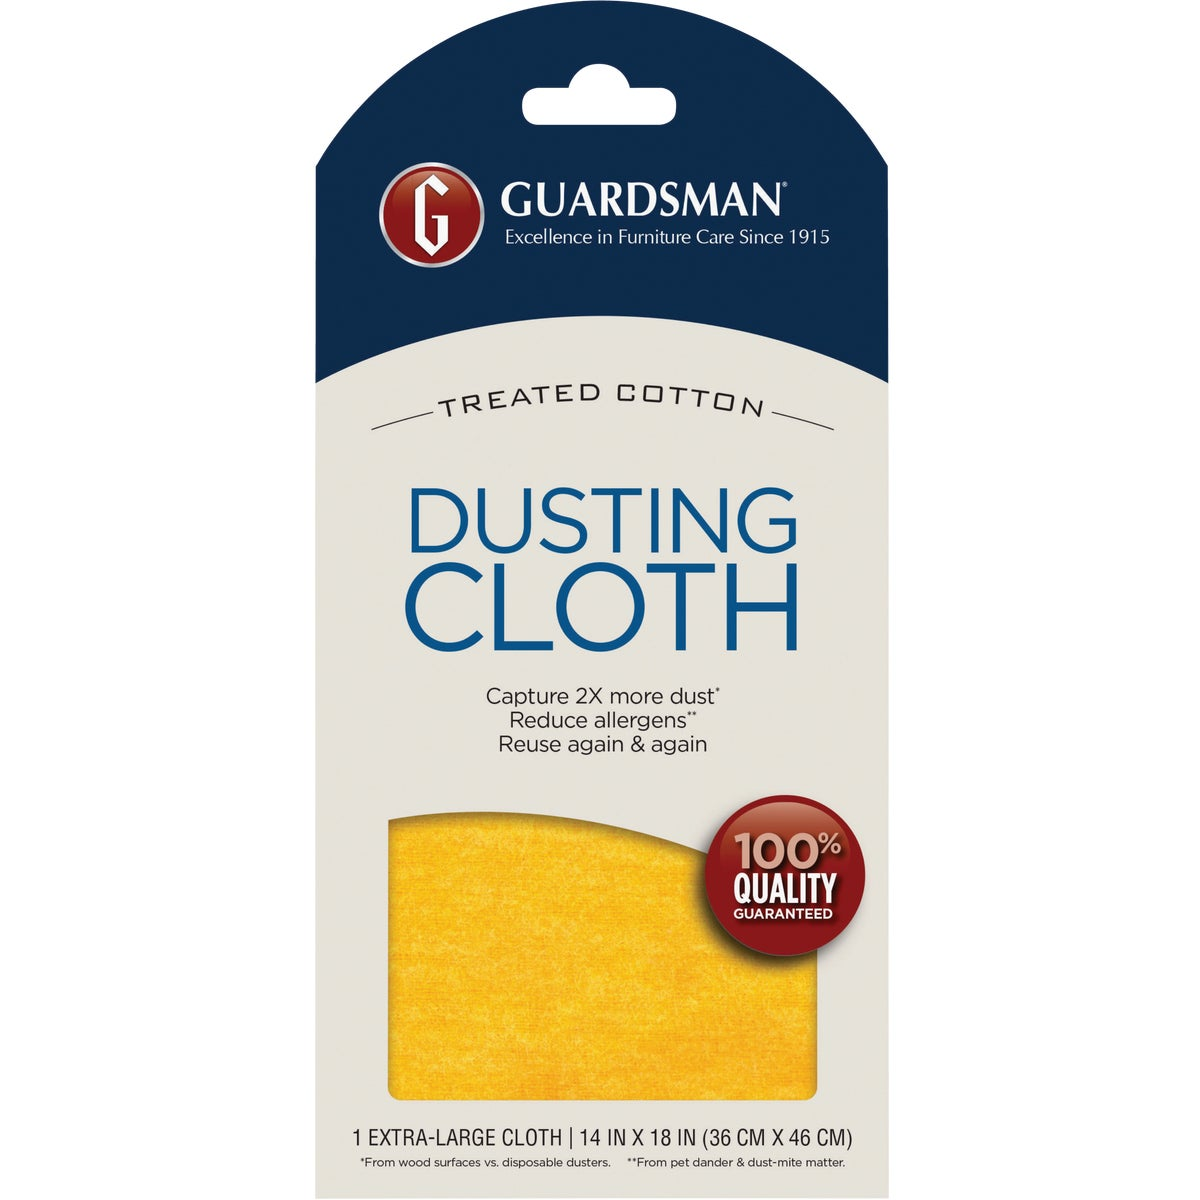 ULTIMATE DUSTING CLOTH - 462100 by Valspar  Guardsman